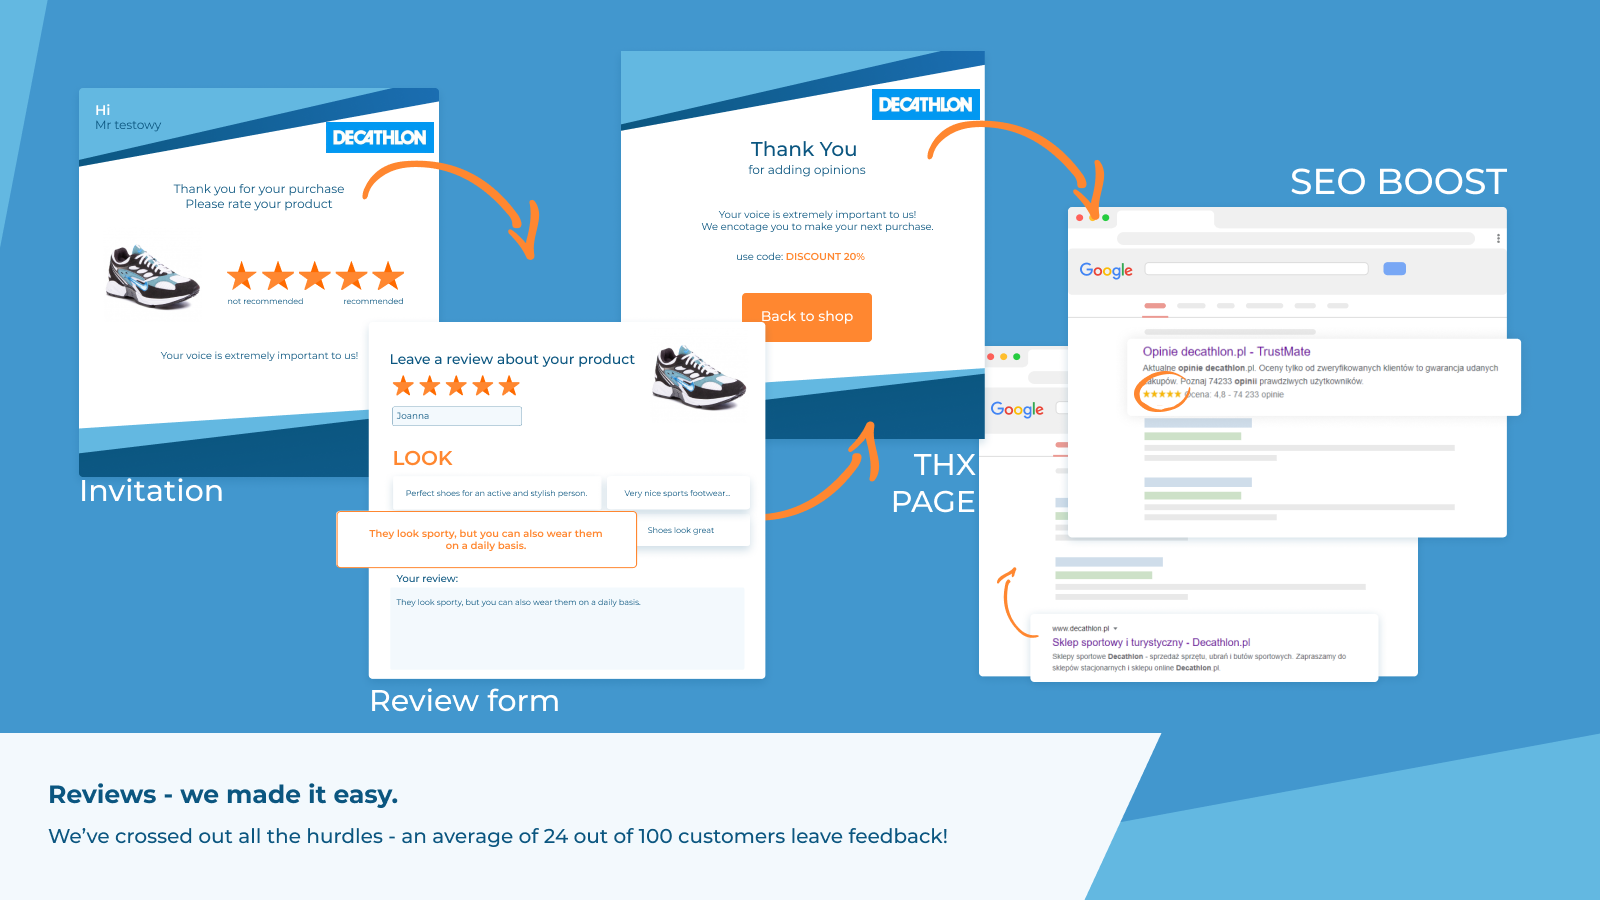 How does it works - Invitation, form, review, SEO